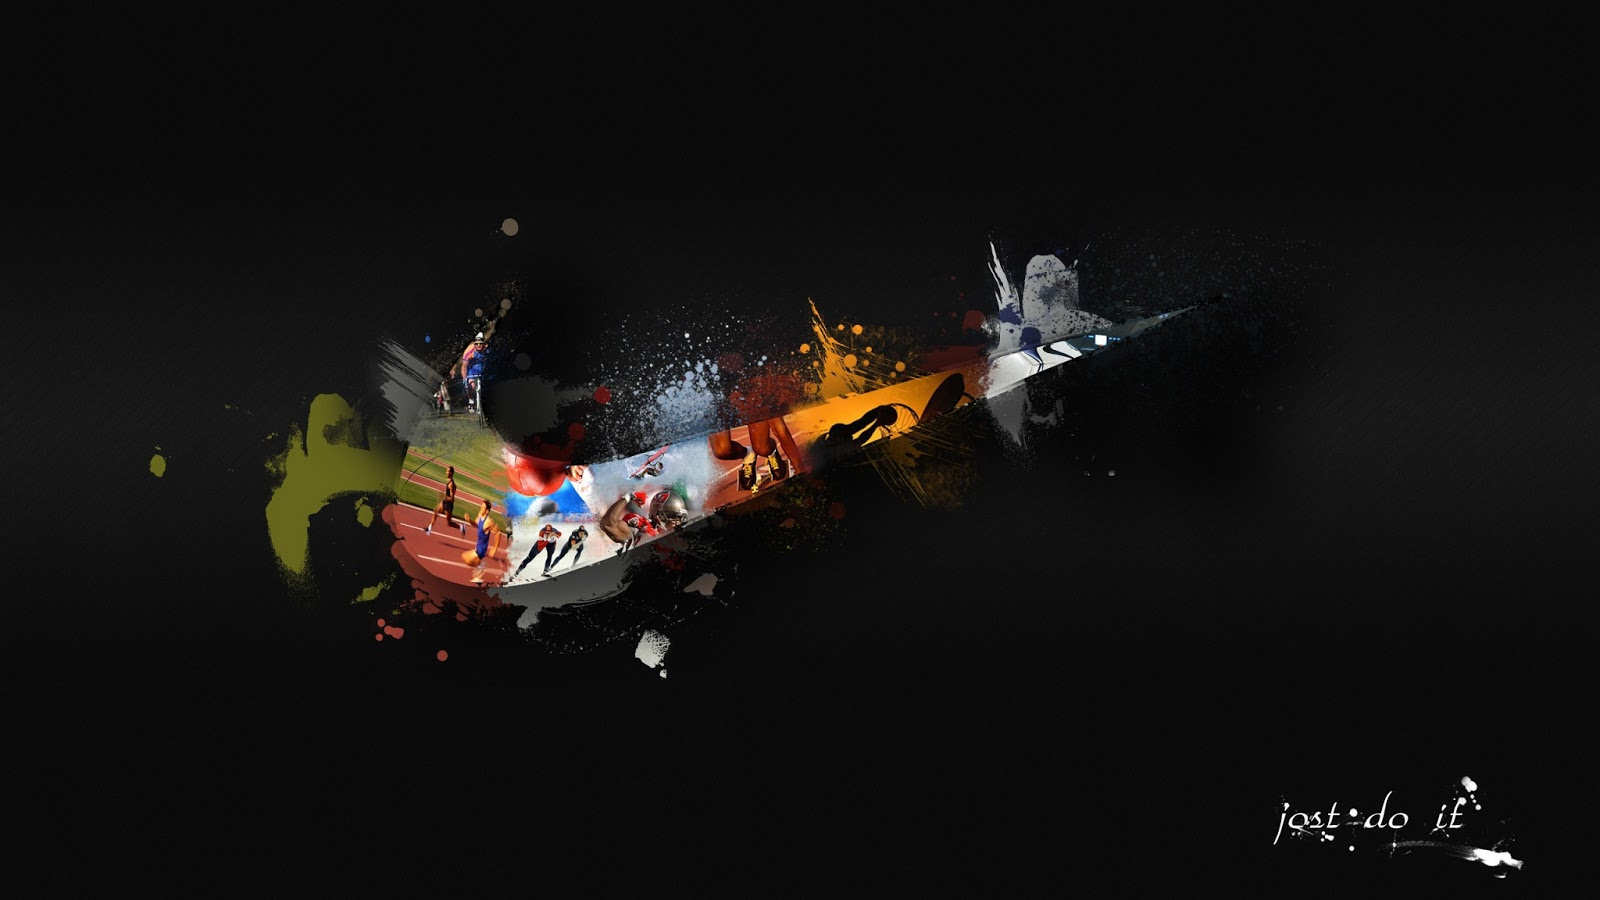 HD WAllppaers: Nike HD Wallpaper 1080p